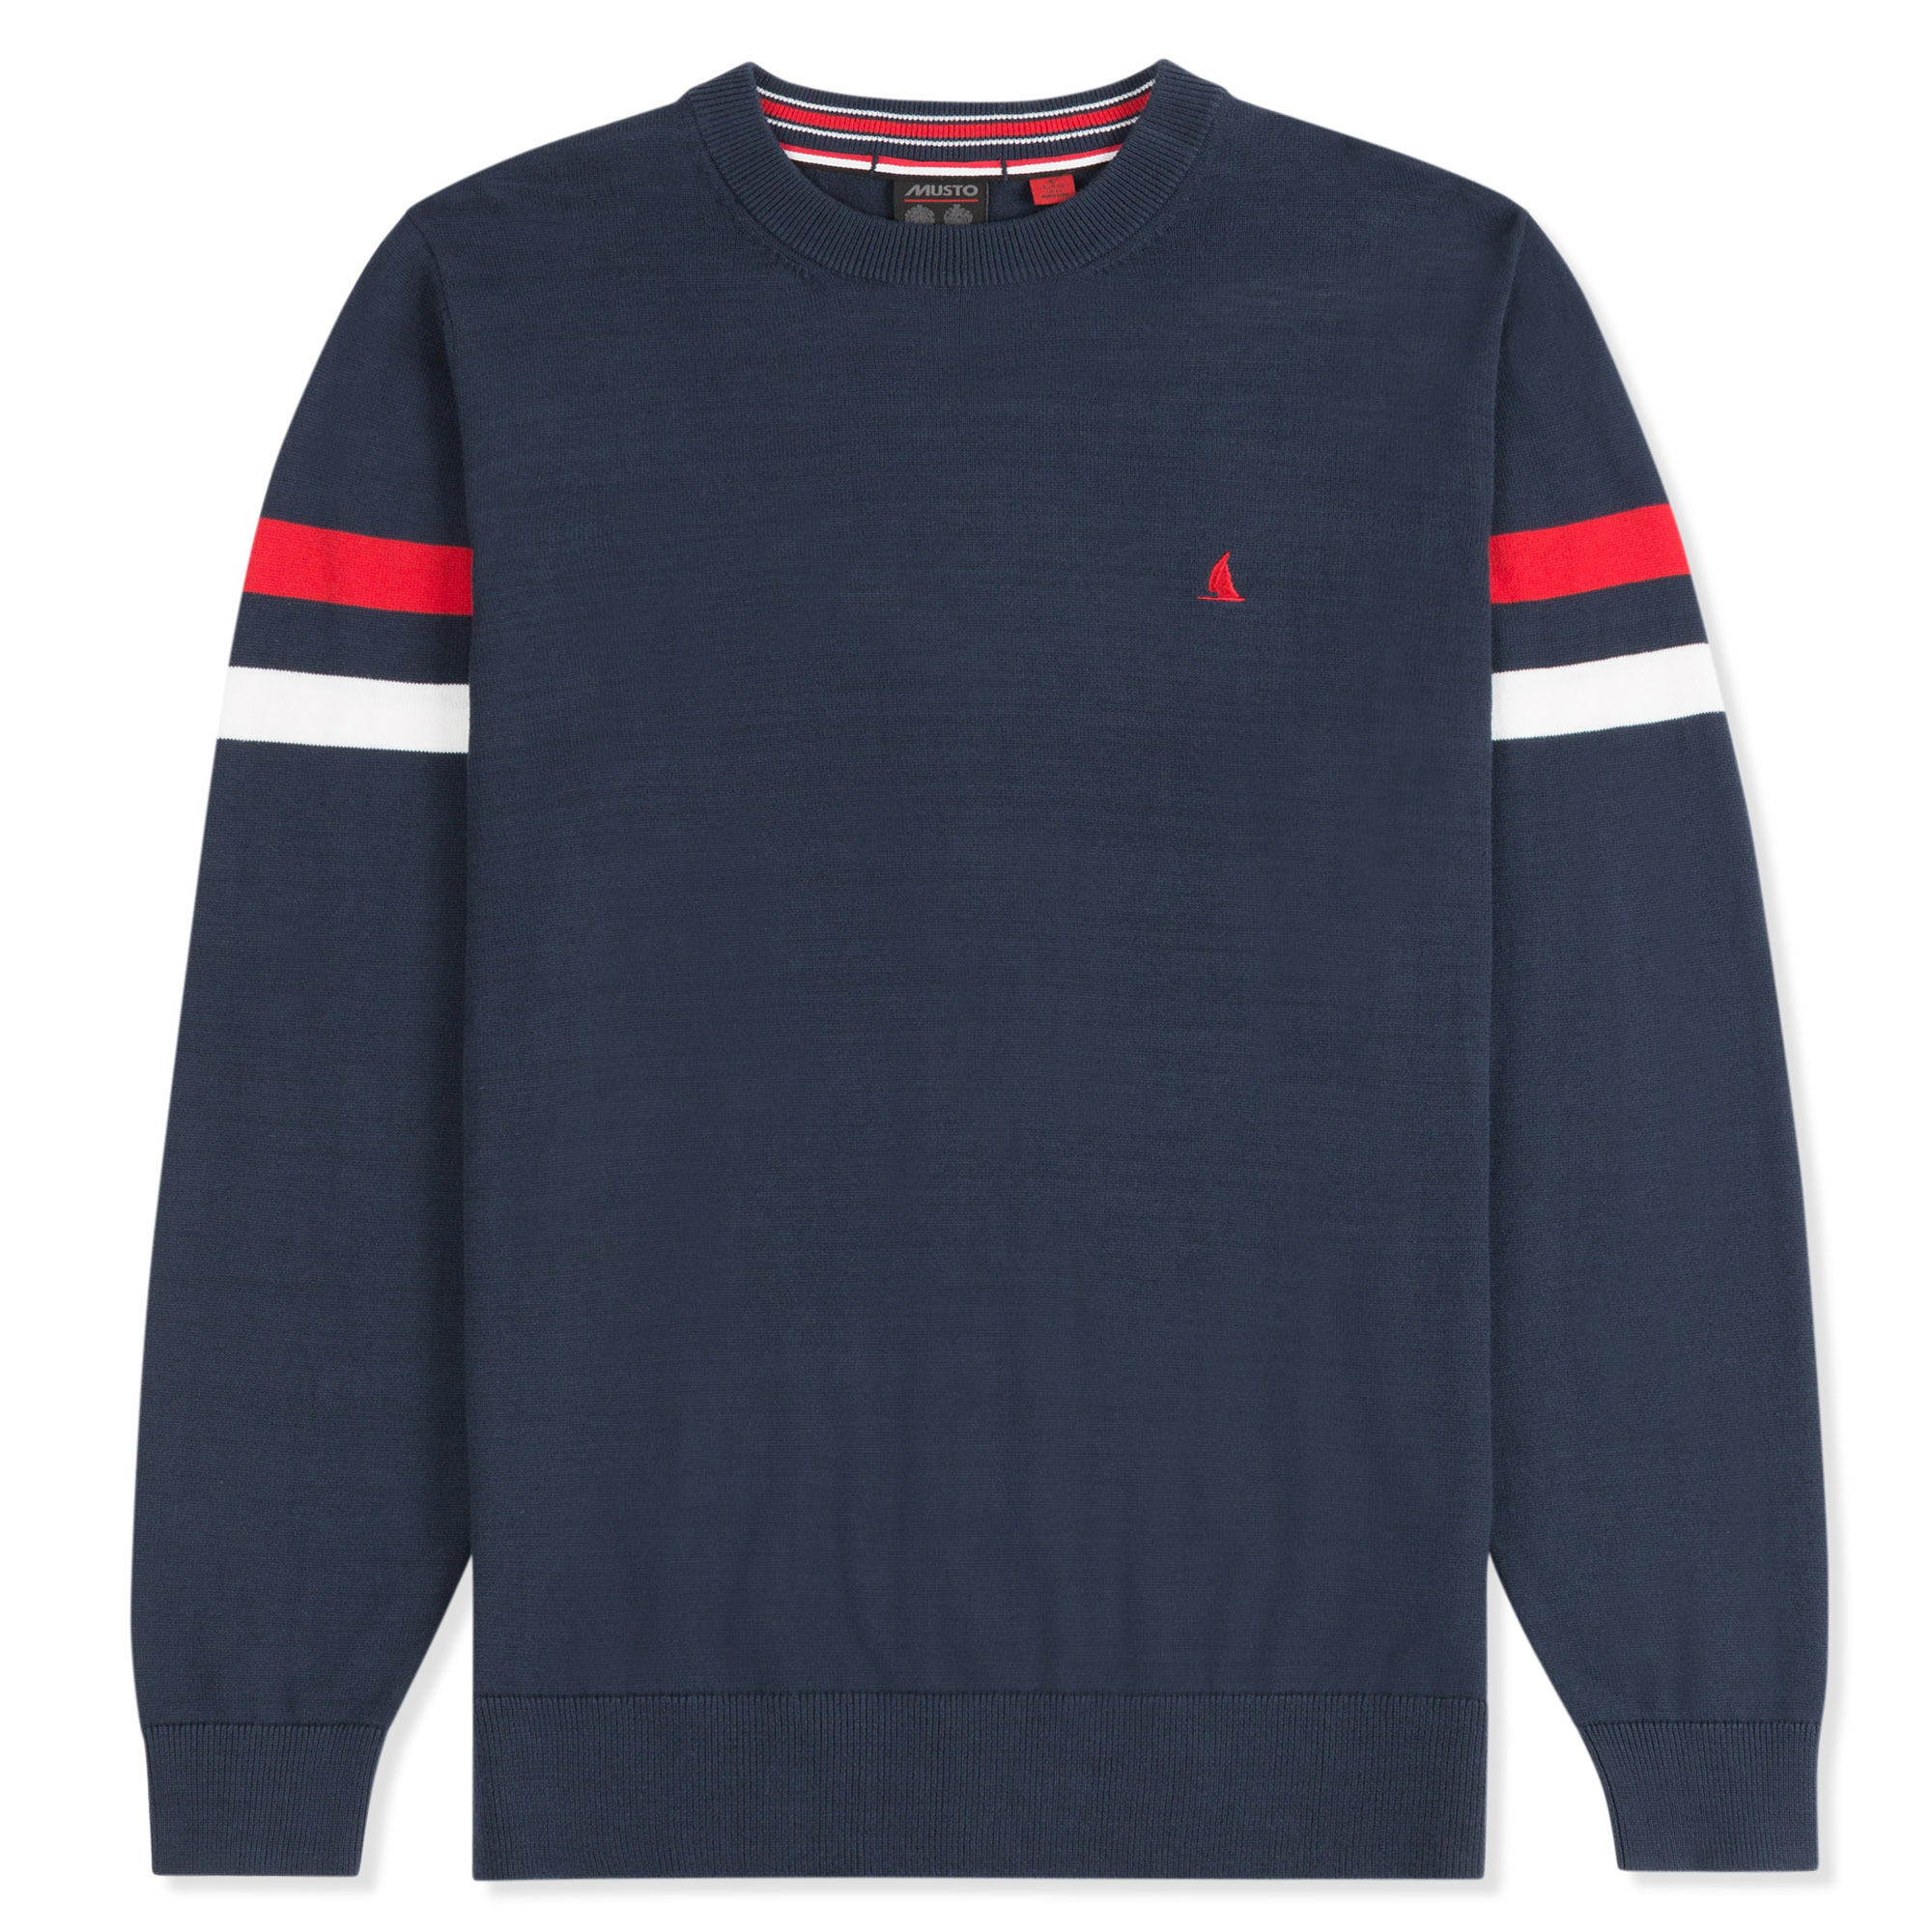 YACHT CREW NECK KNIT